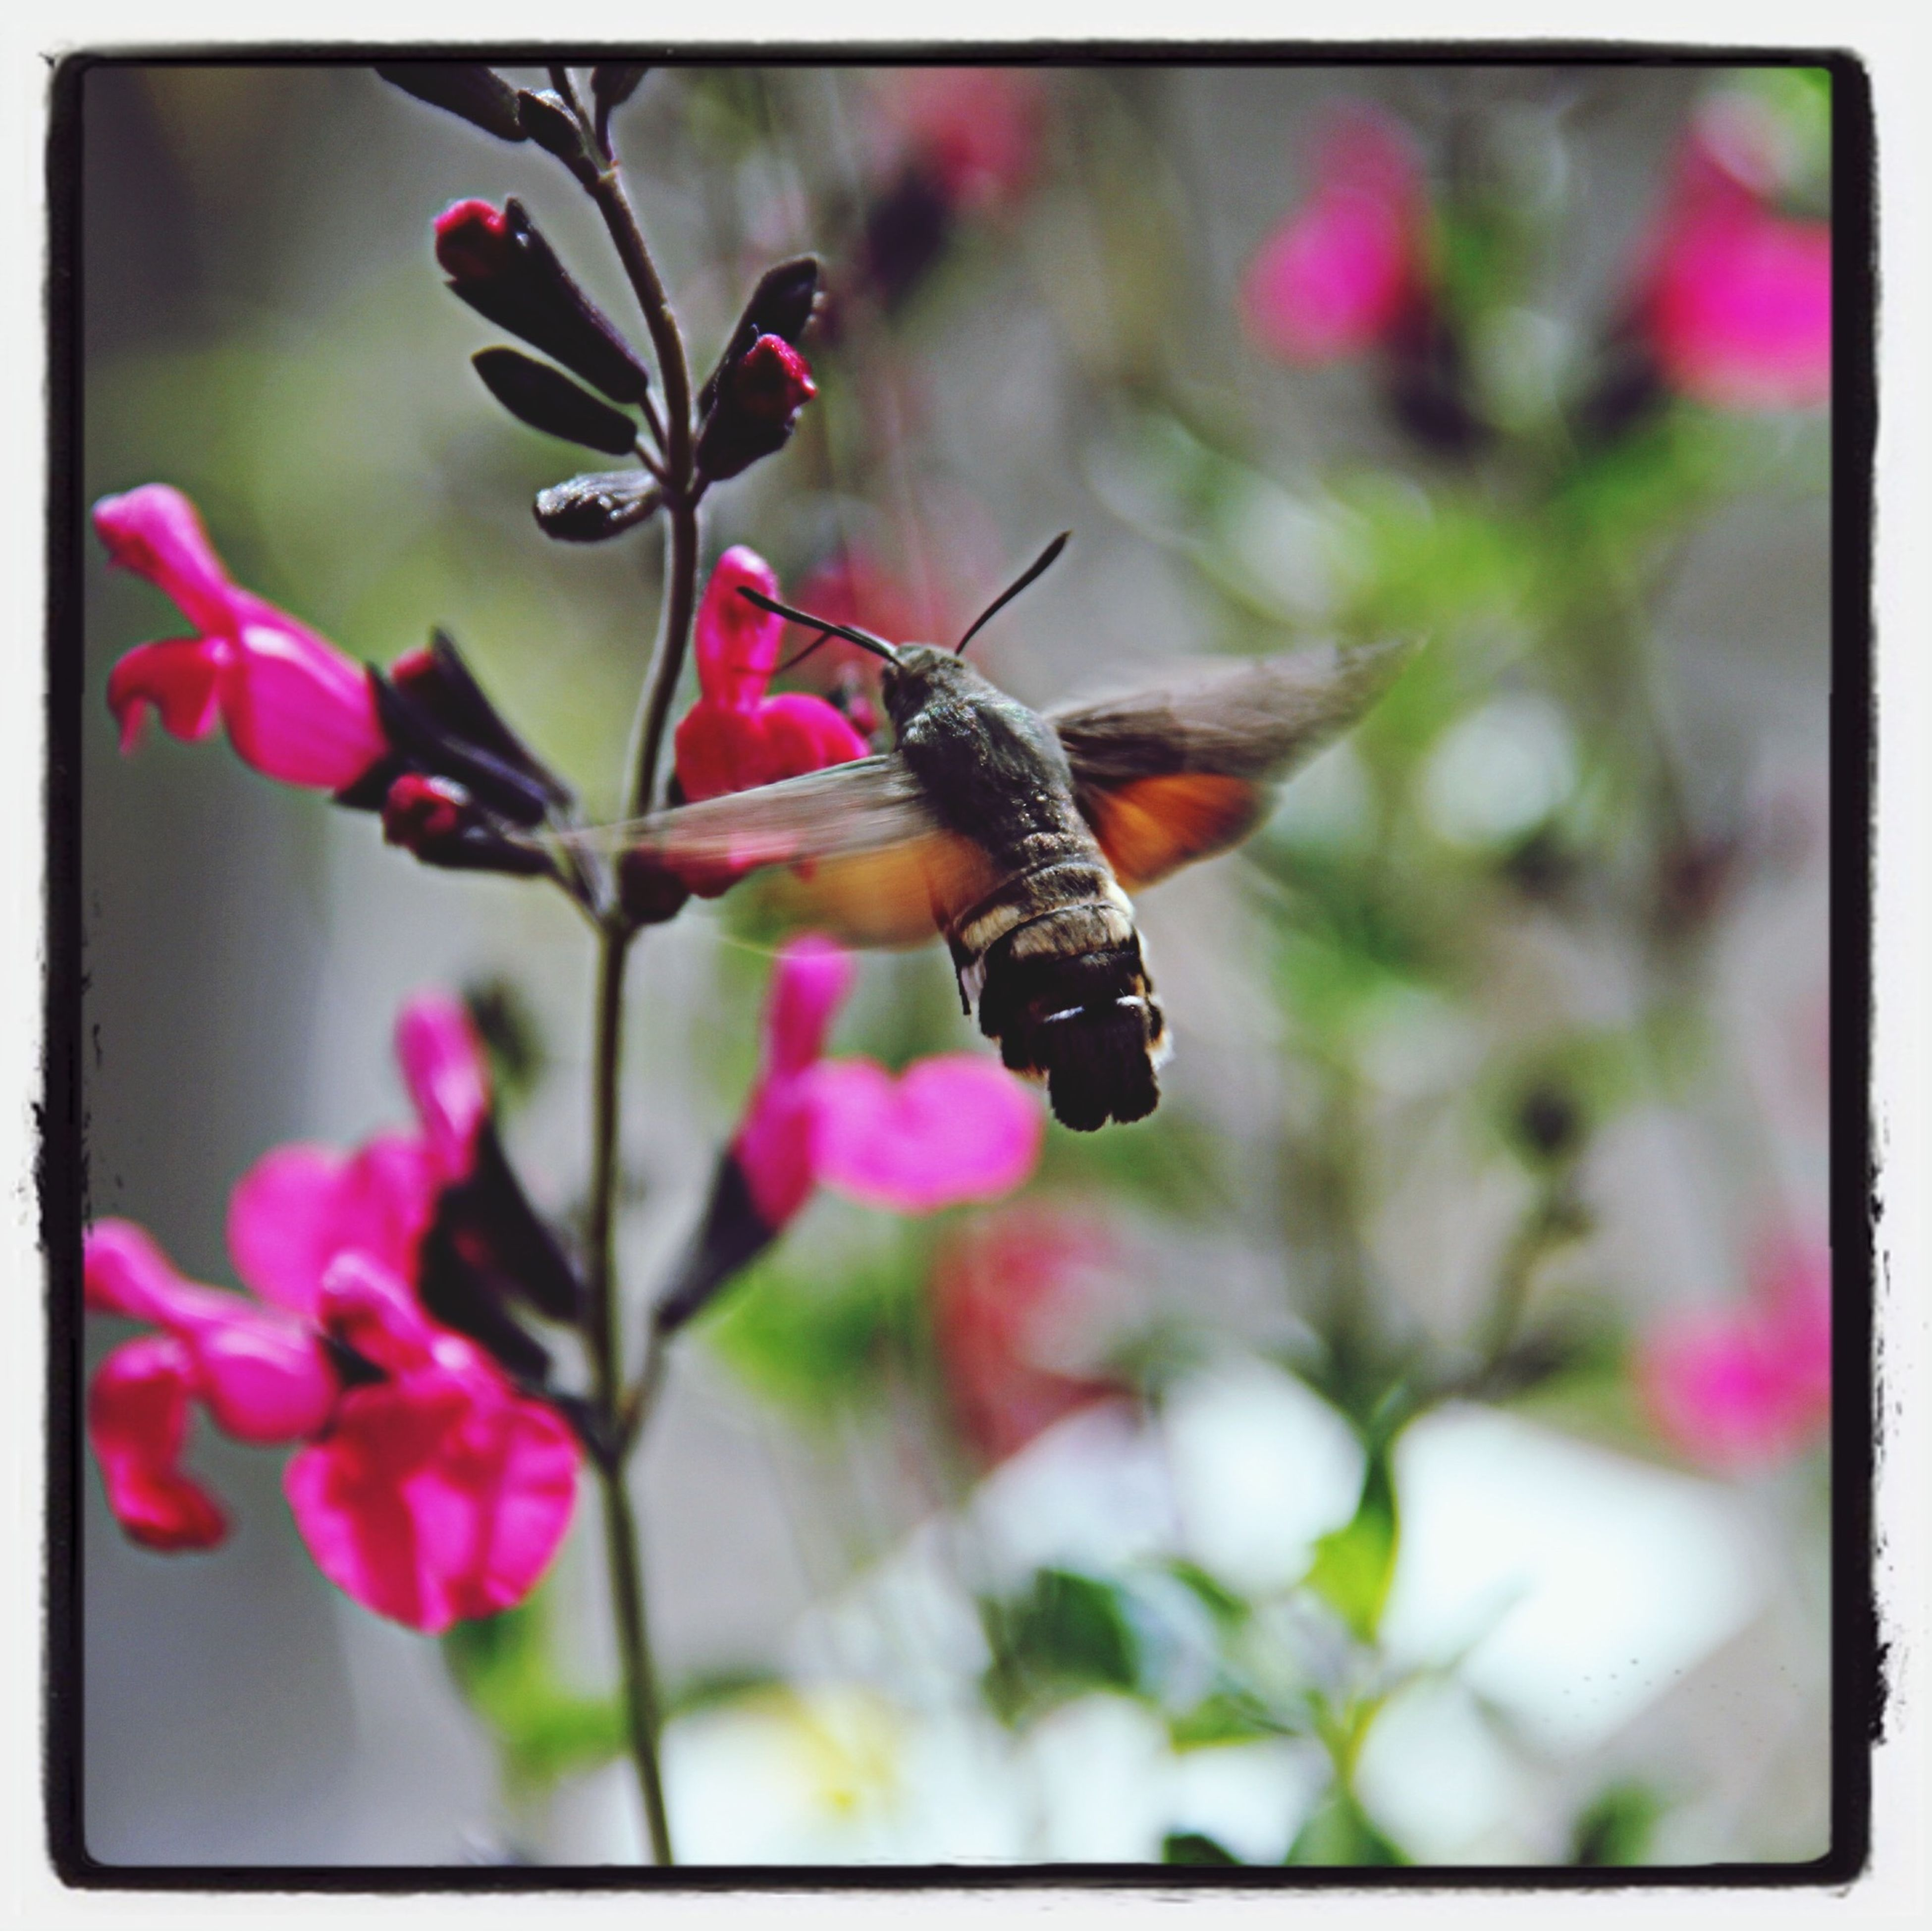 insect, flower, one animal, transfer print, animal themes, animals in the wild, wildlife, focus on foreground, auto post production filter, close-up, fragility, pink color, butterfly - insect, nature, butterfly, beauty in nature, freshness, selective focus, plant, growth